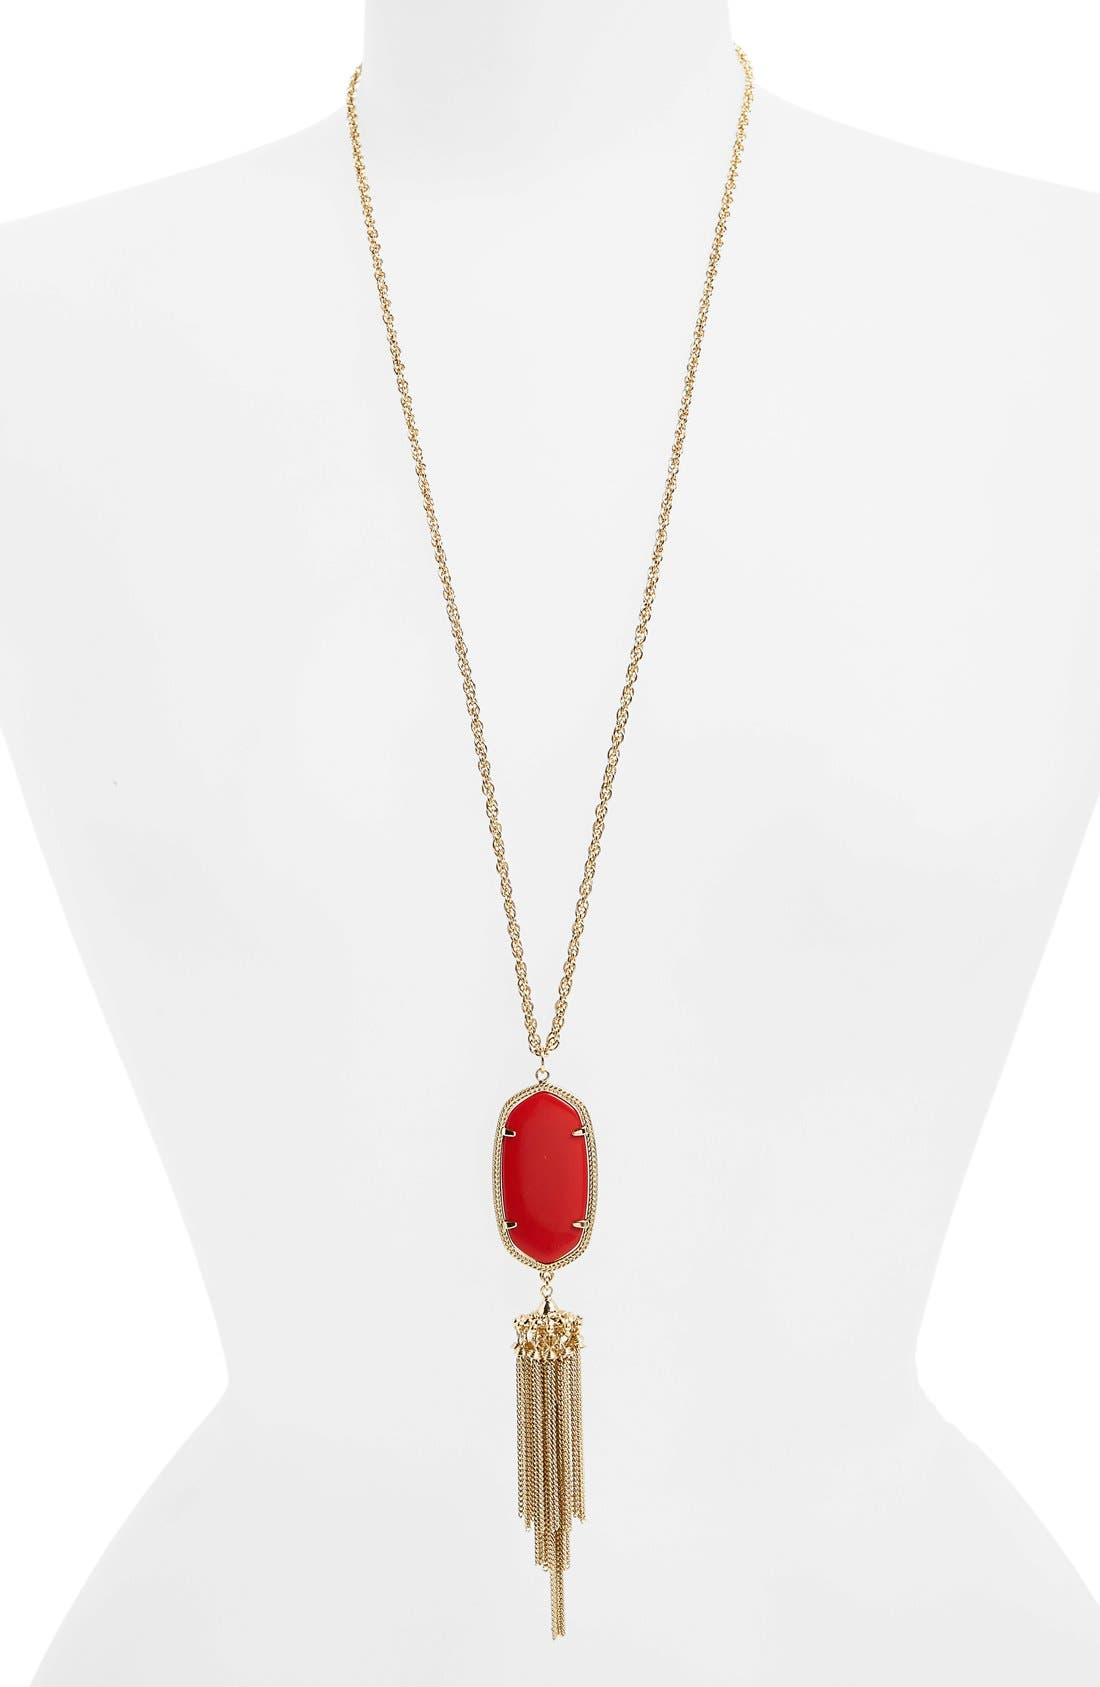 Kendra Scott 'Rayne' Tassel Pendant Necklace